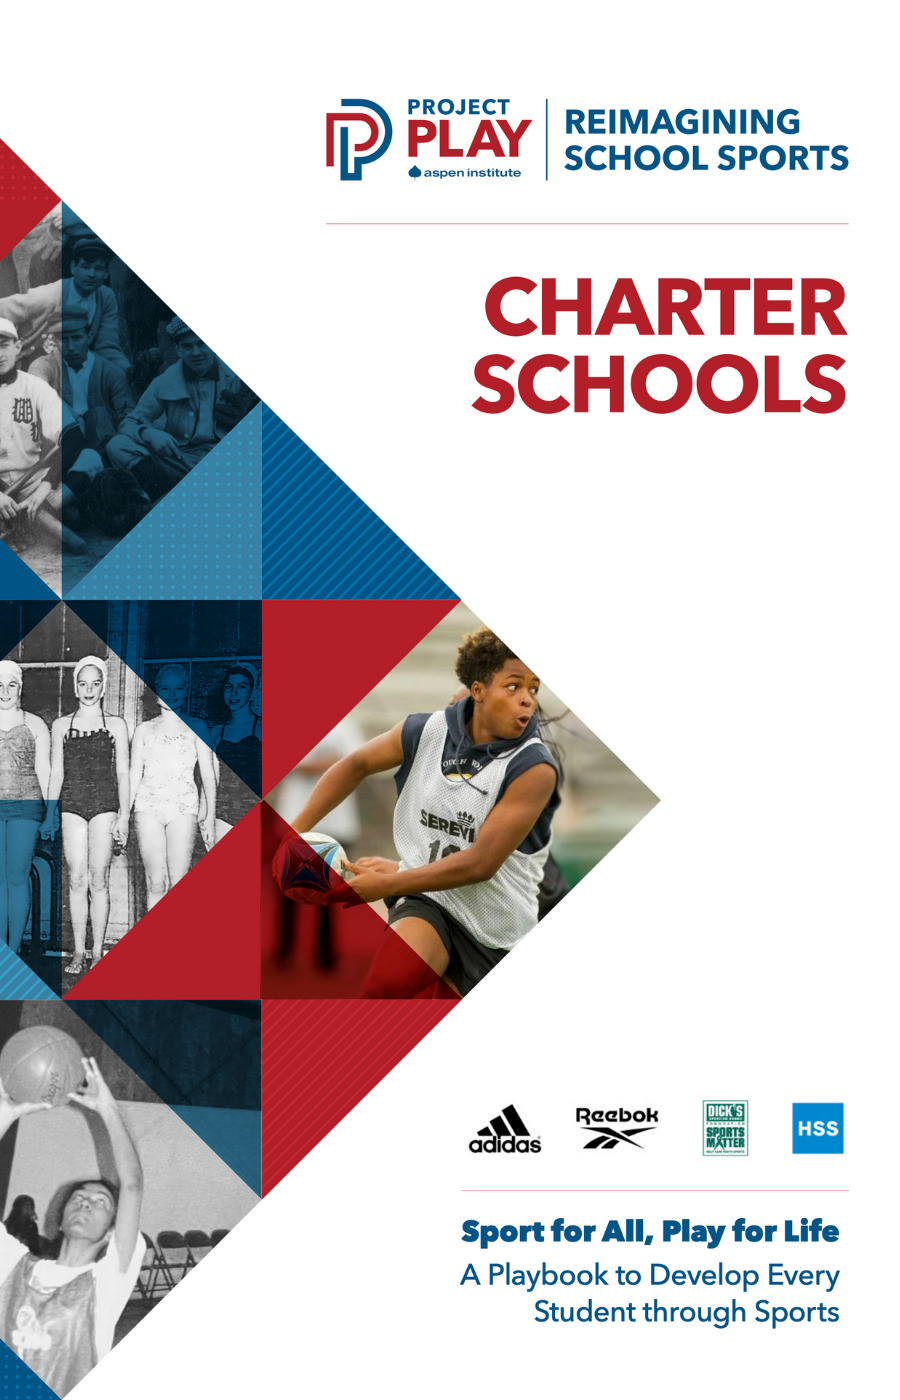 Project Play Reimagining School Sports: Charter Schools